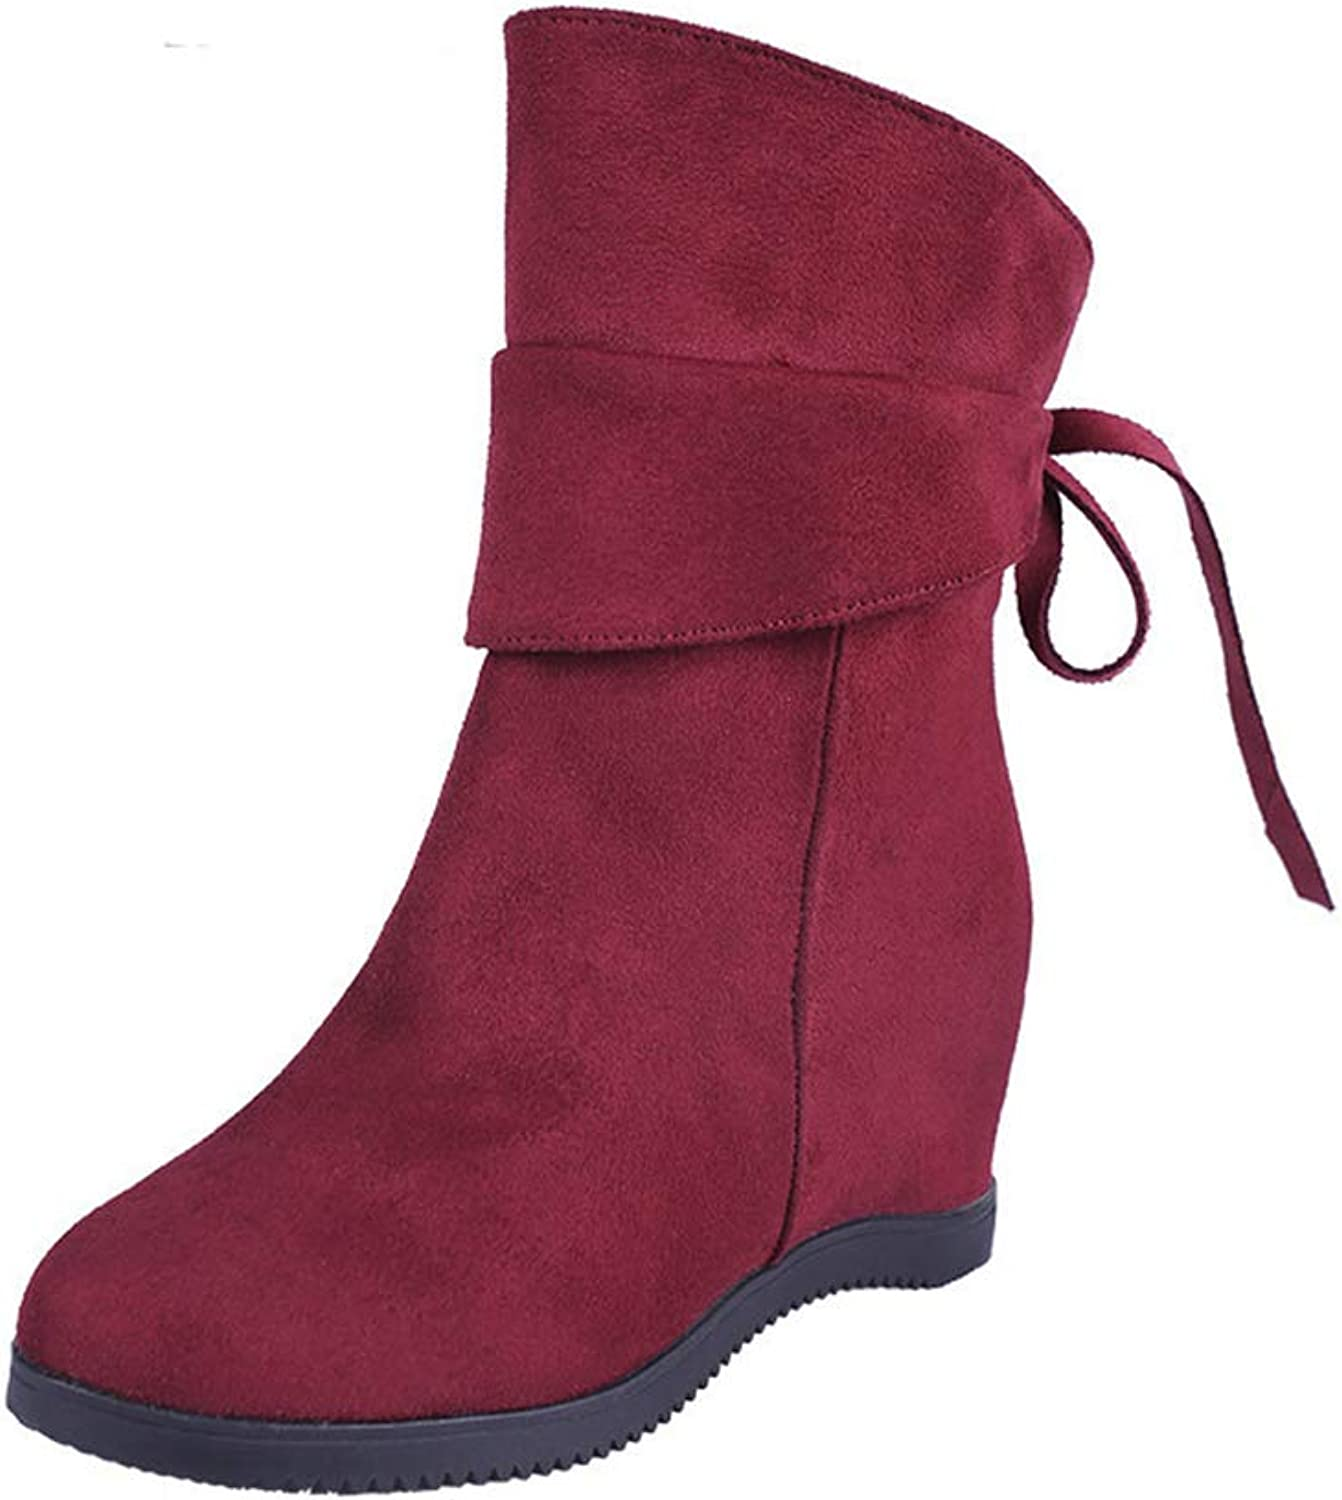 Hoxekle Comfortable Casual Wedge Increase Height Boots Women Fashion Rear Tie Bow Decoration Ankle Bootie Female